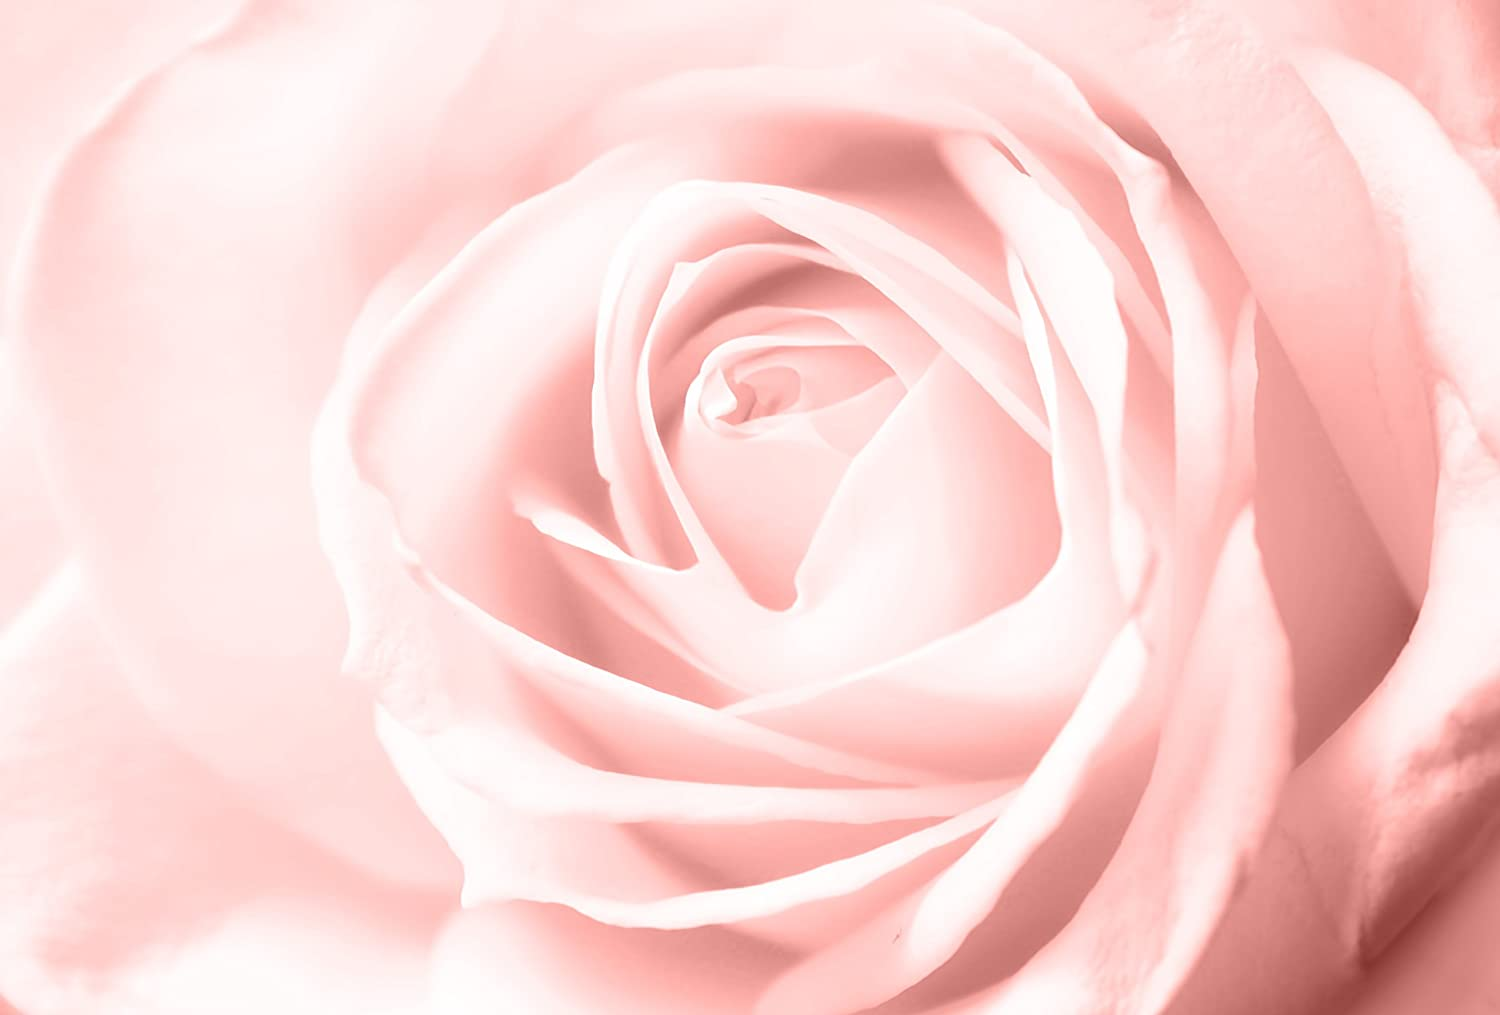 Large Pink Rose Flower Close Up Floral Canvas Wall Art Picture Any Size